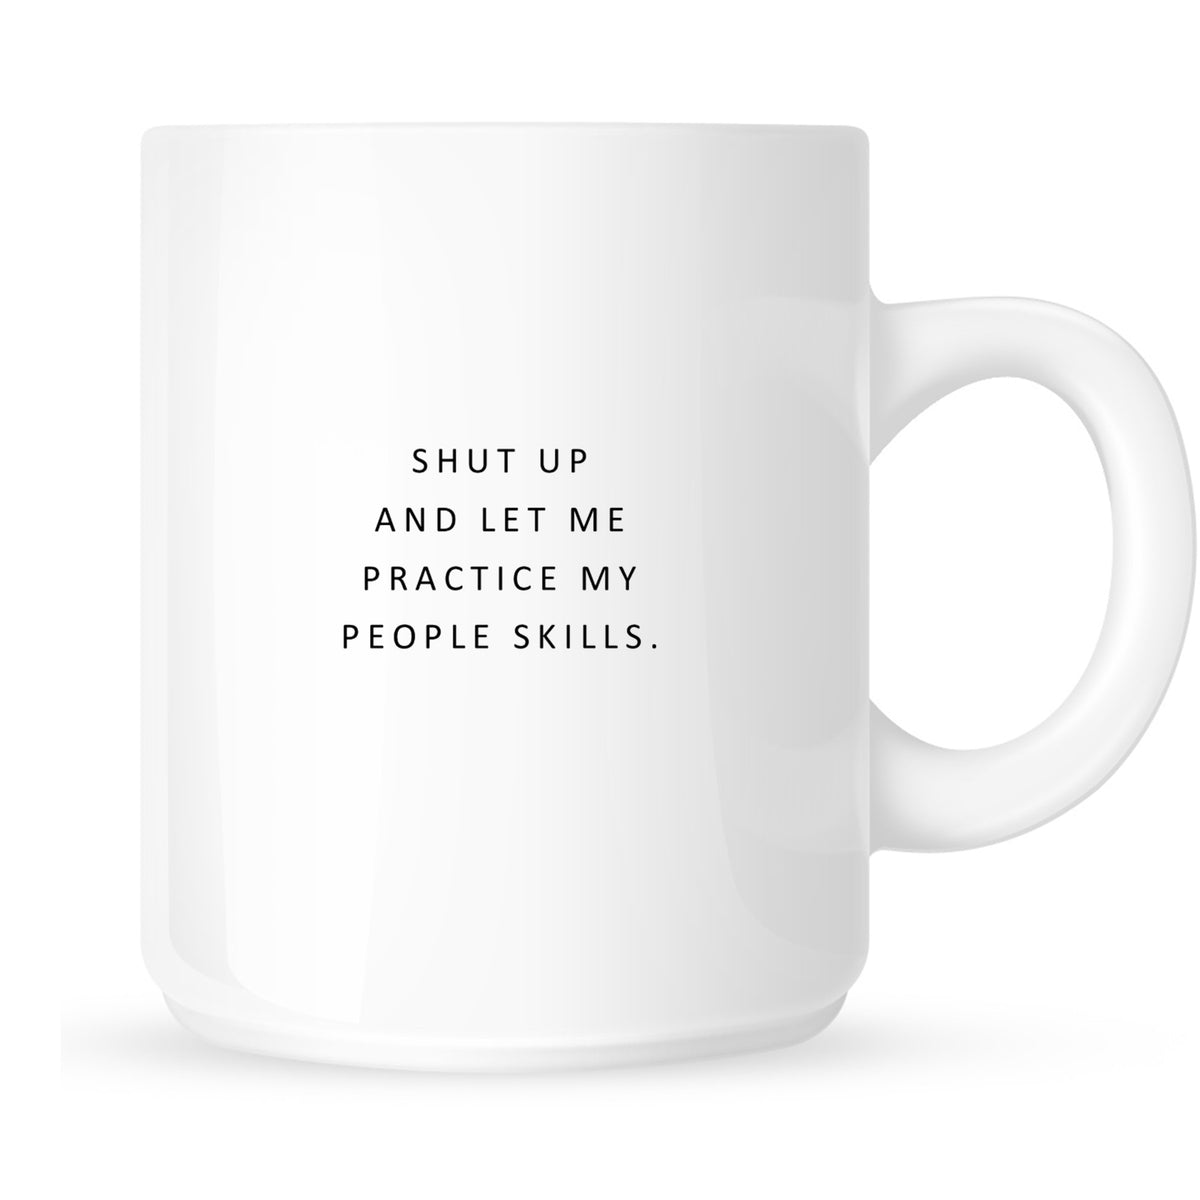 Mug - Shut Up & Let Me Practice My People Skills